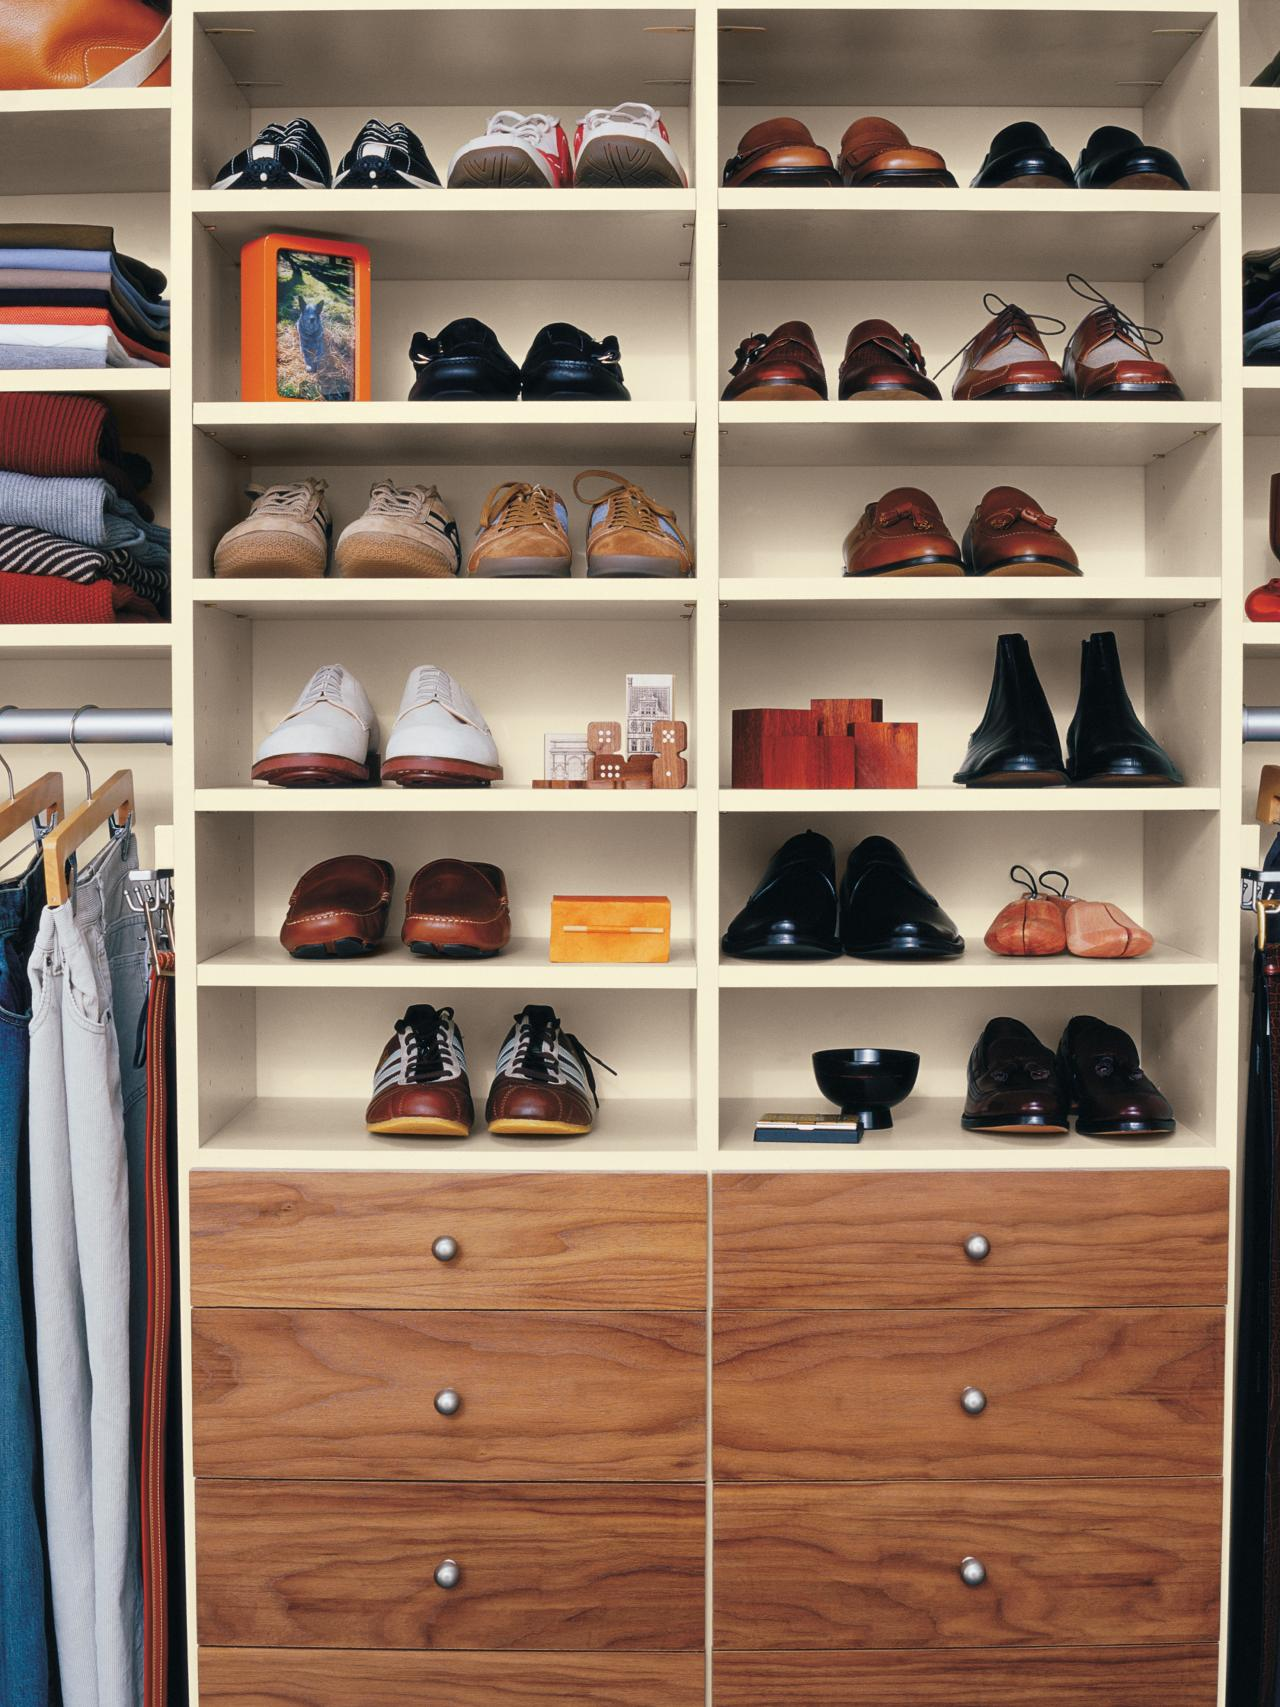 Elegant Shoe Racks for Closets wooden shoe racks for closets